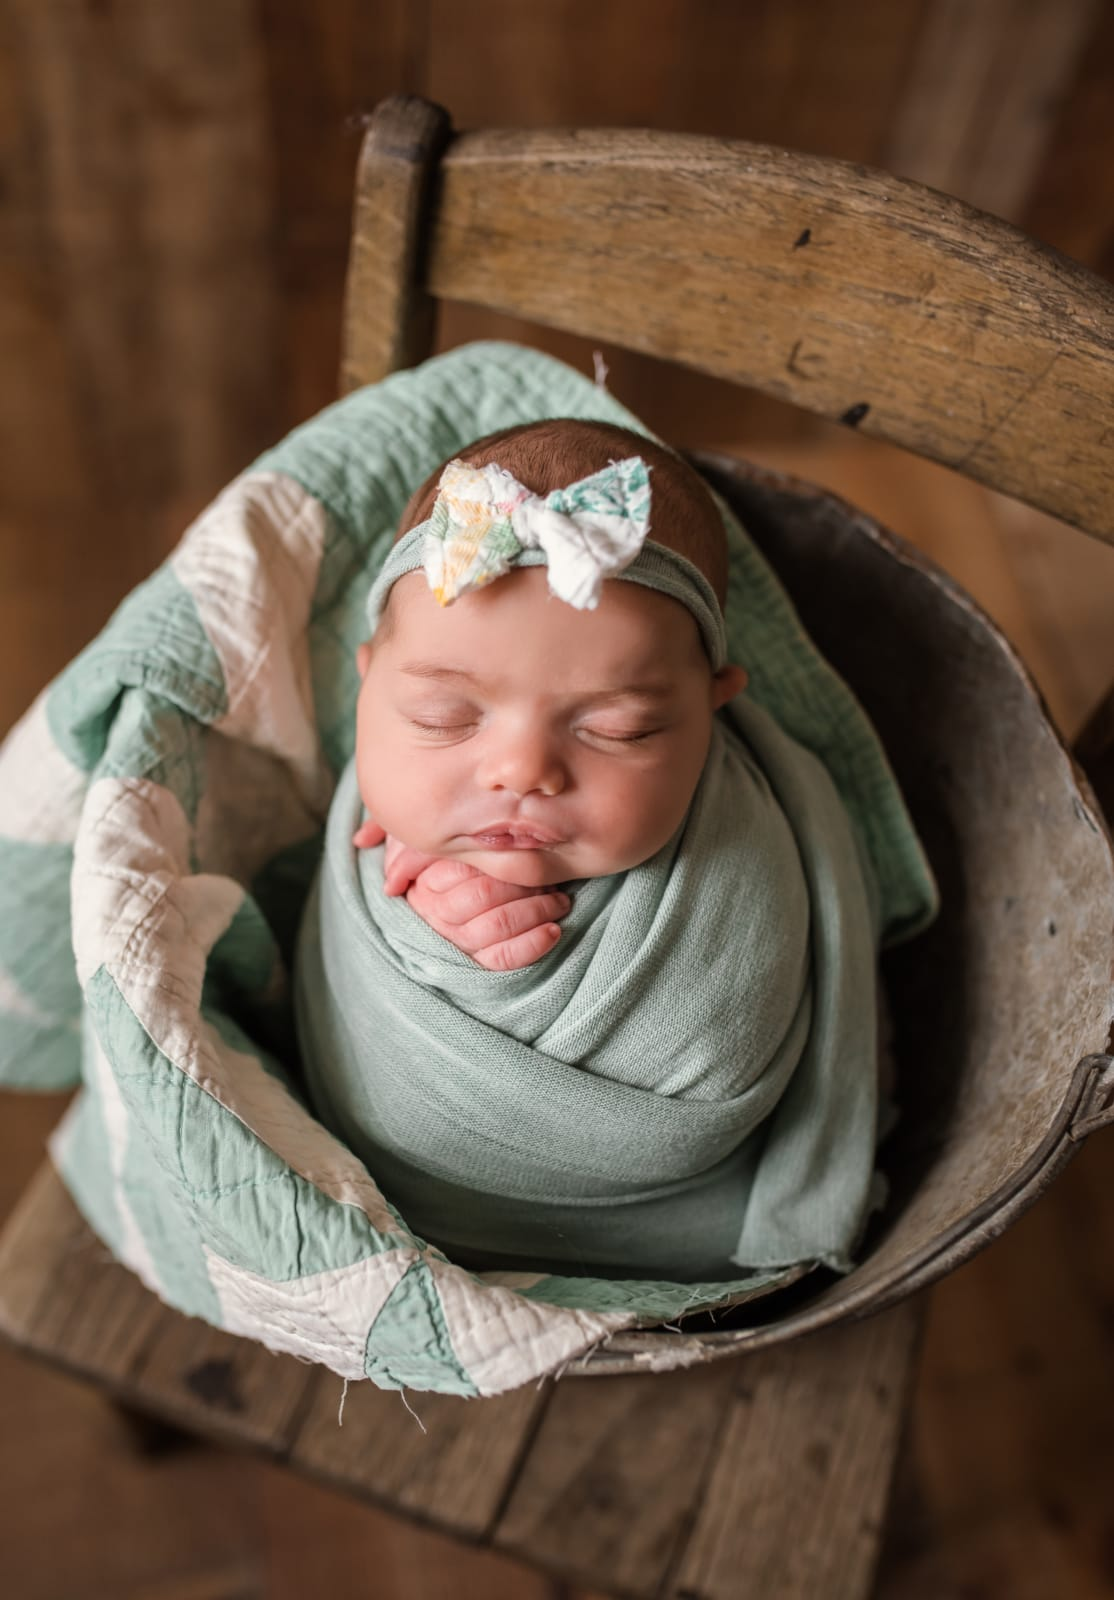 Howell_Newborn_Photography_Session_April_2019-176